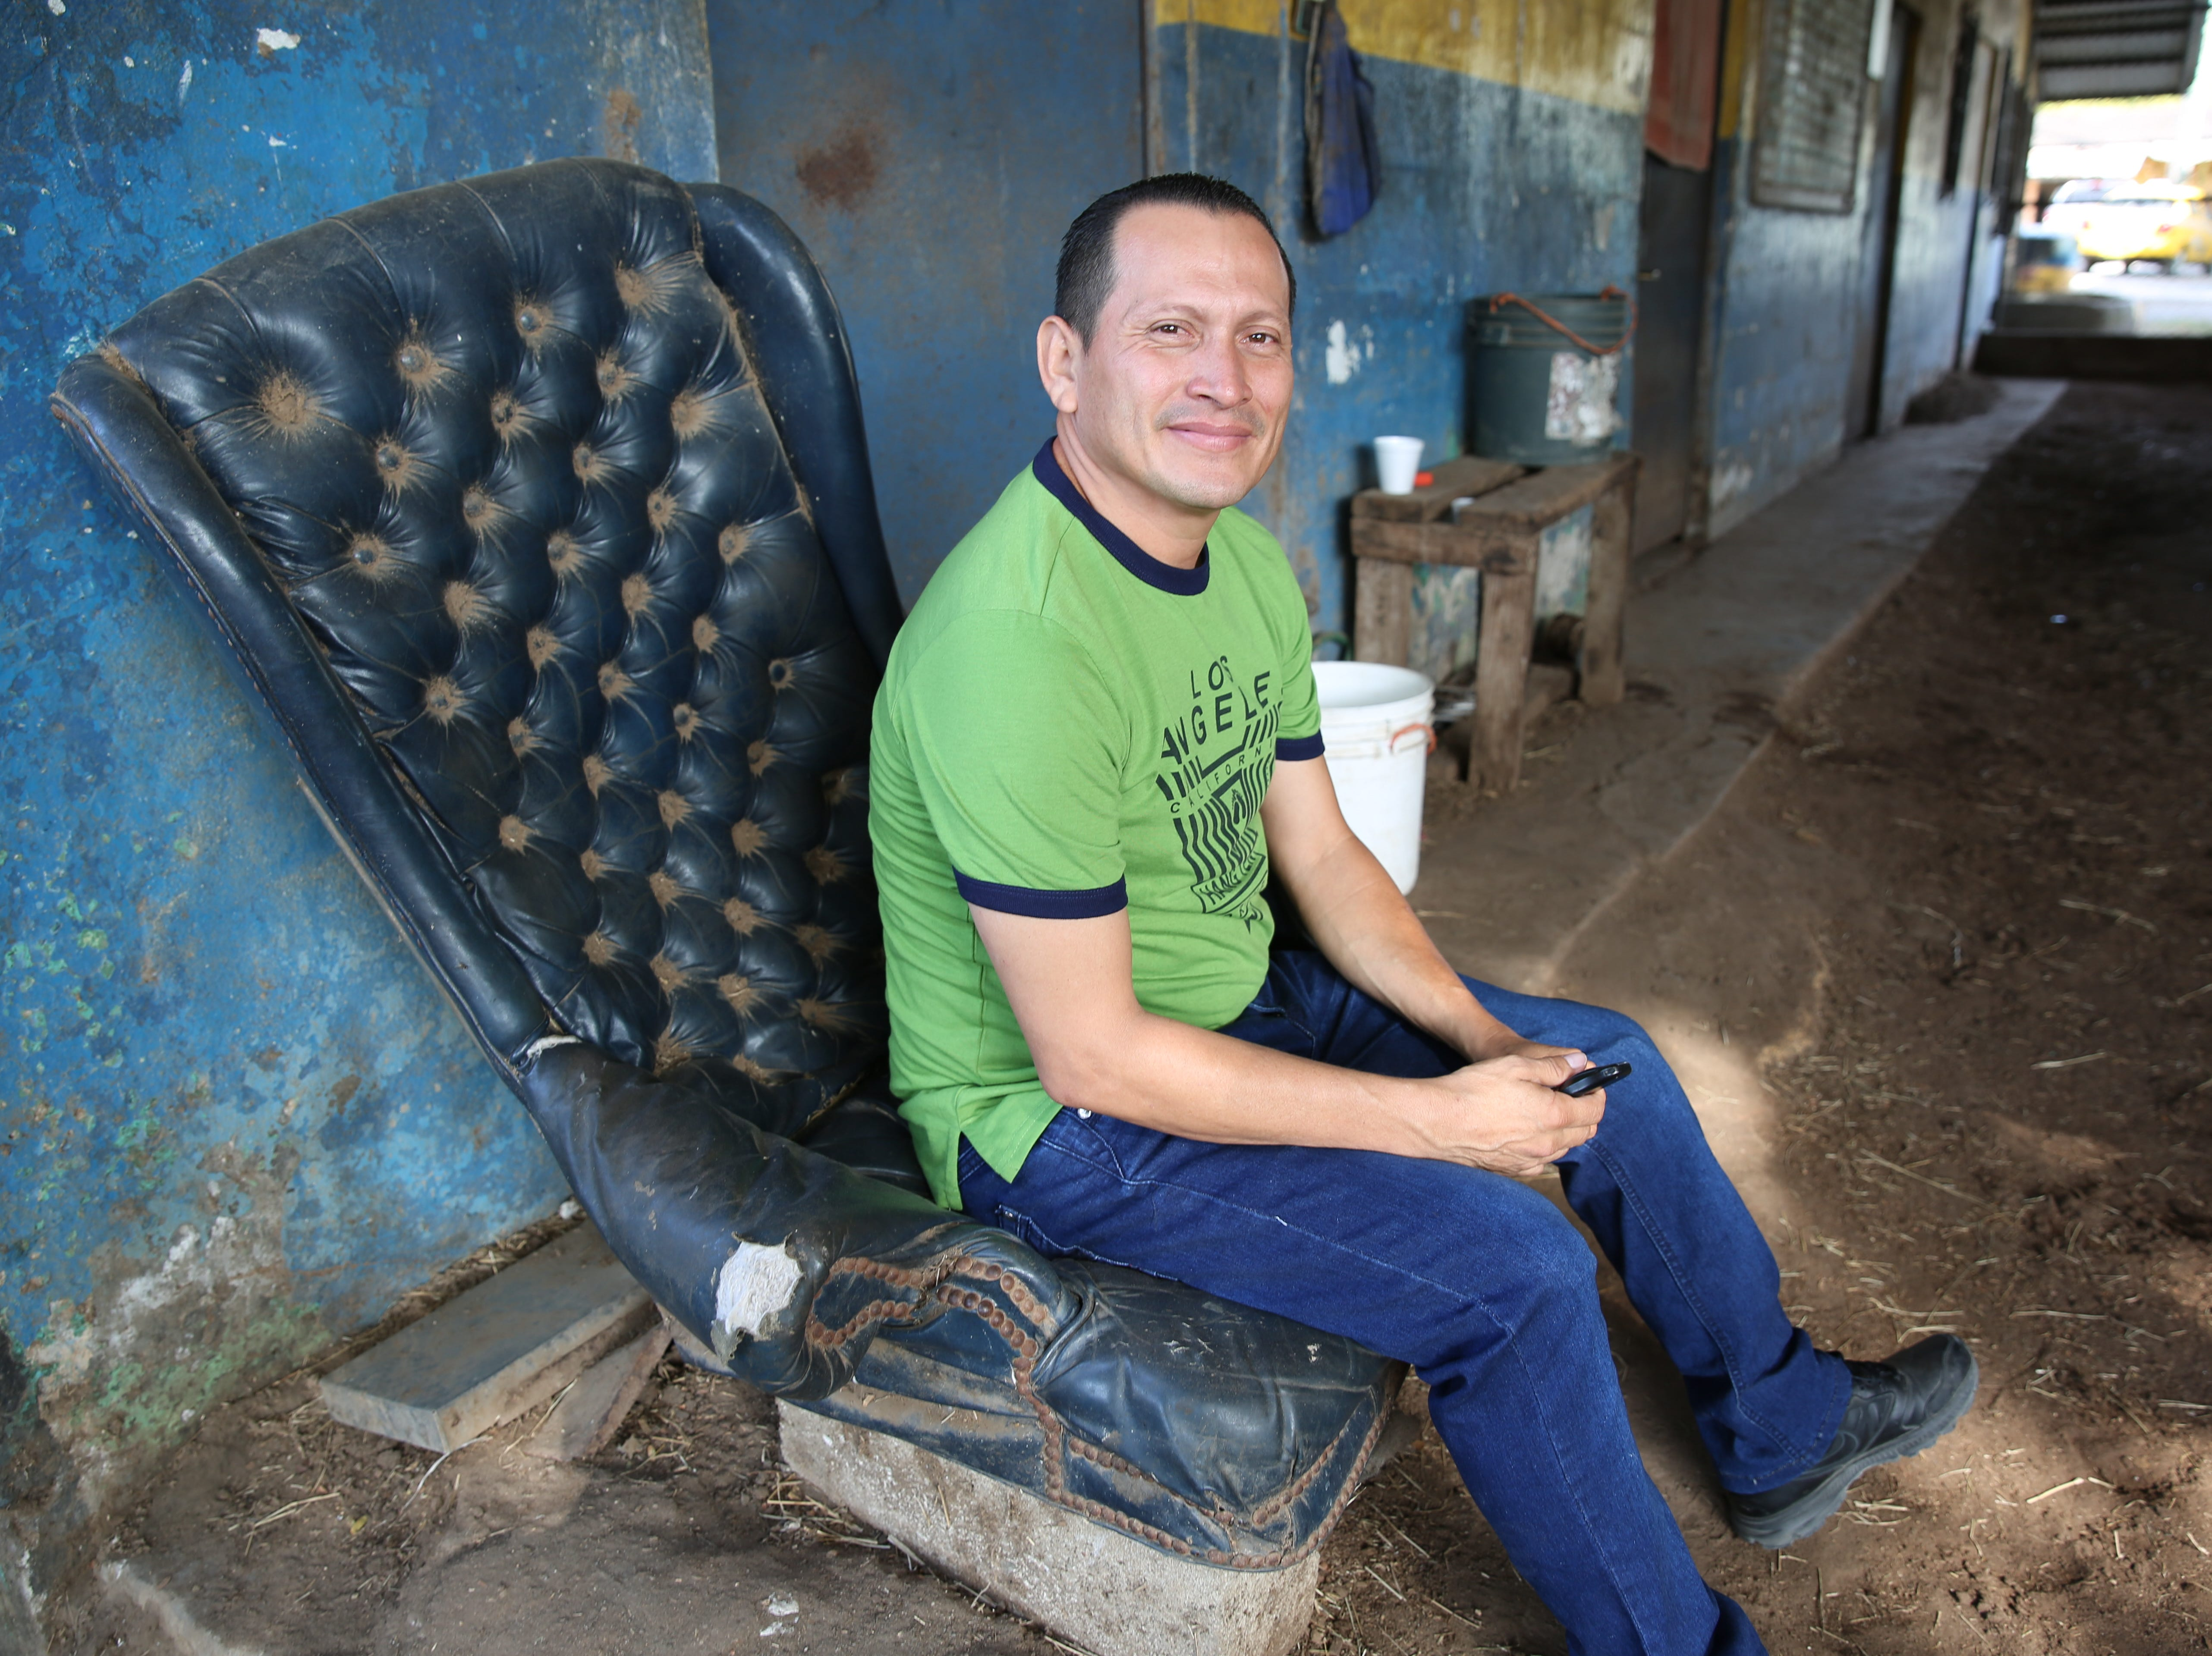 A former jockey who now trains students sits in the stables outside of Panama's only racetrack